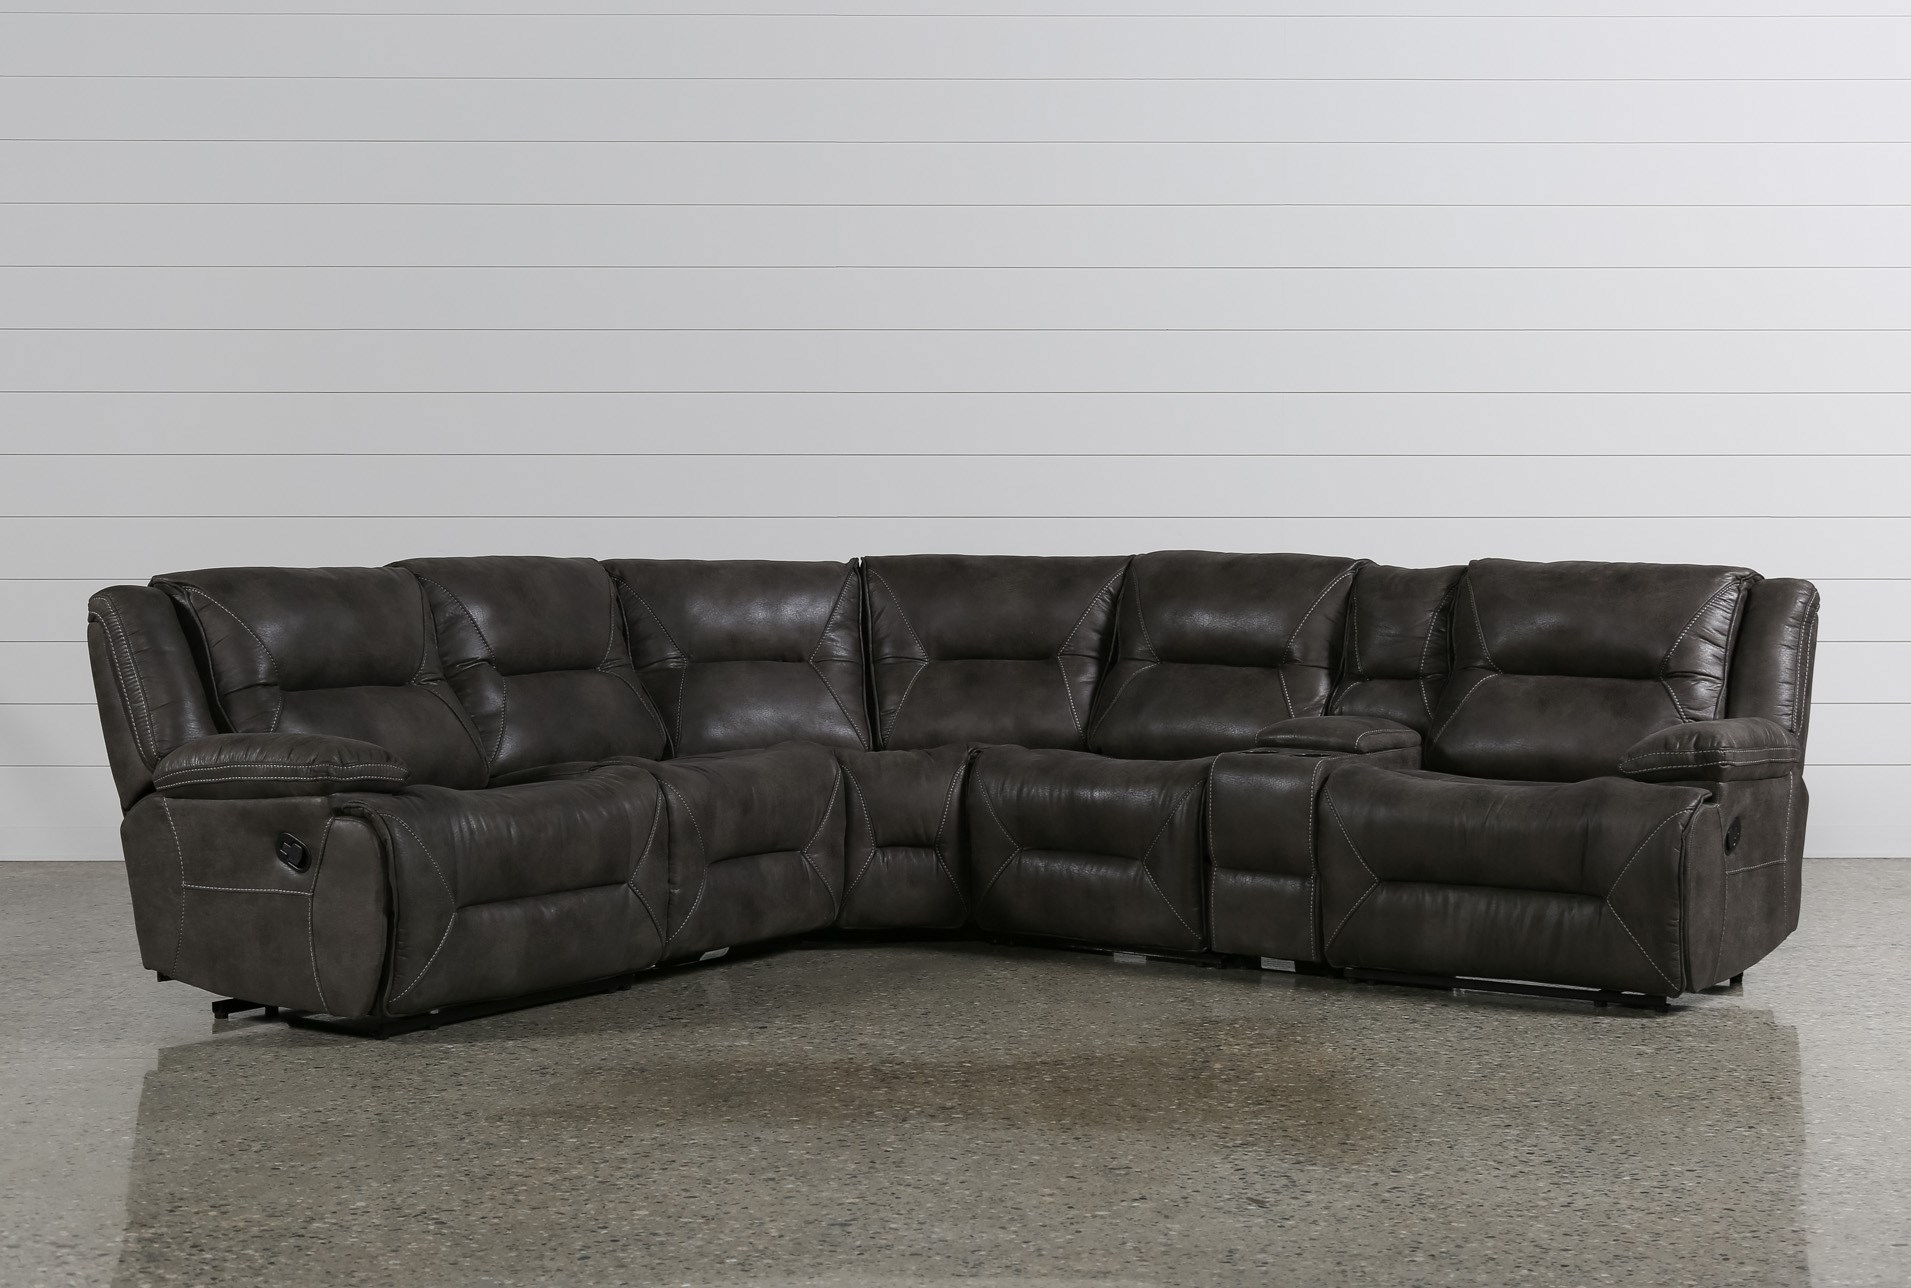 mackenzie collectionscoastermackenzie piece tone sofa recliner shop reclining silver sectional